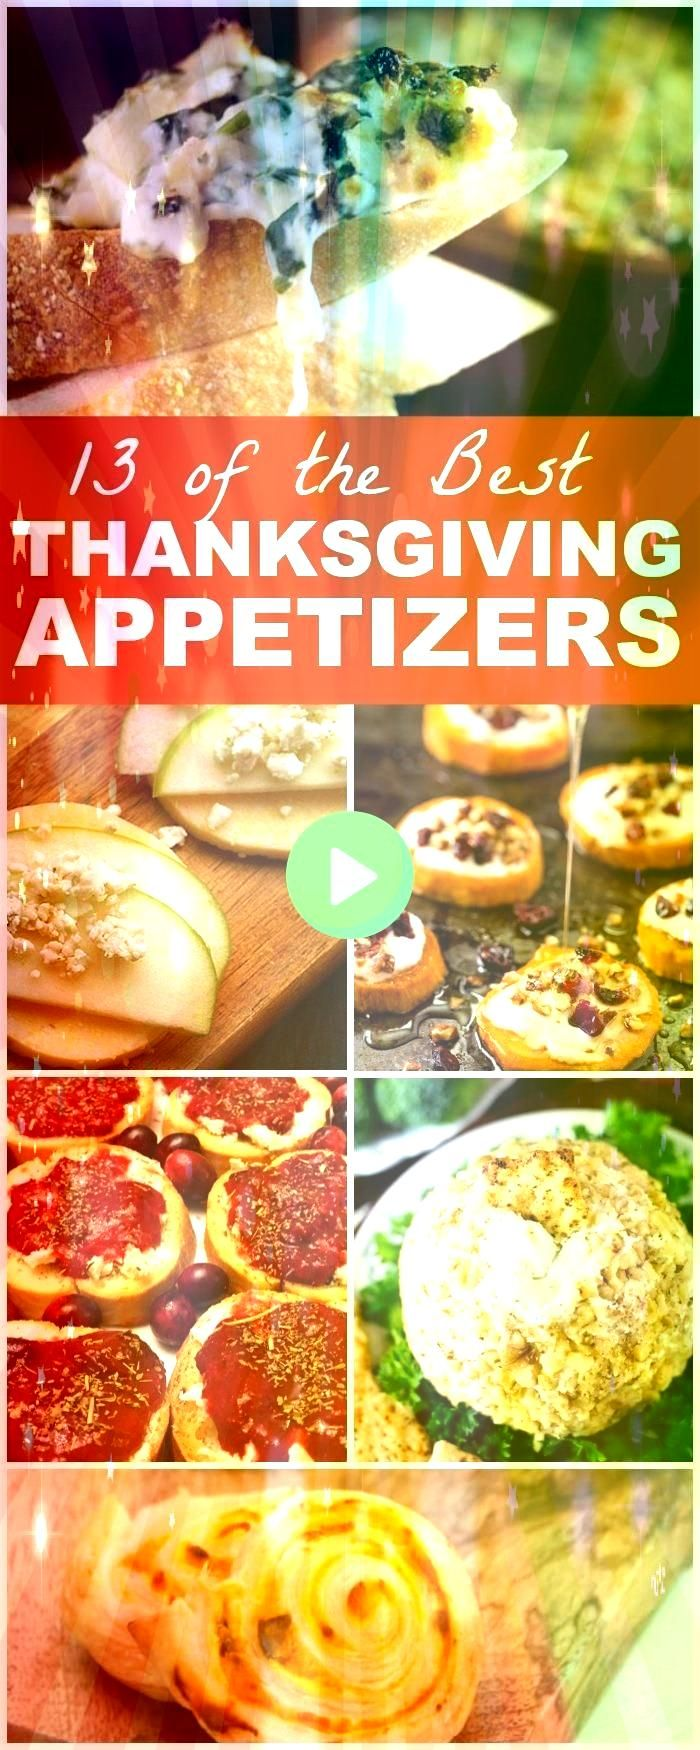 Thanksgiving Appetizers that will please a crowd Get your taste buds ready Easy Tha Easy Thanksgiving Appetizers that will please a crowd Get your taste buds ready Easy T...